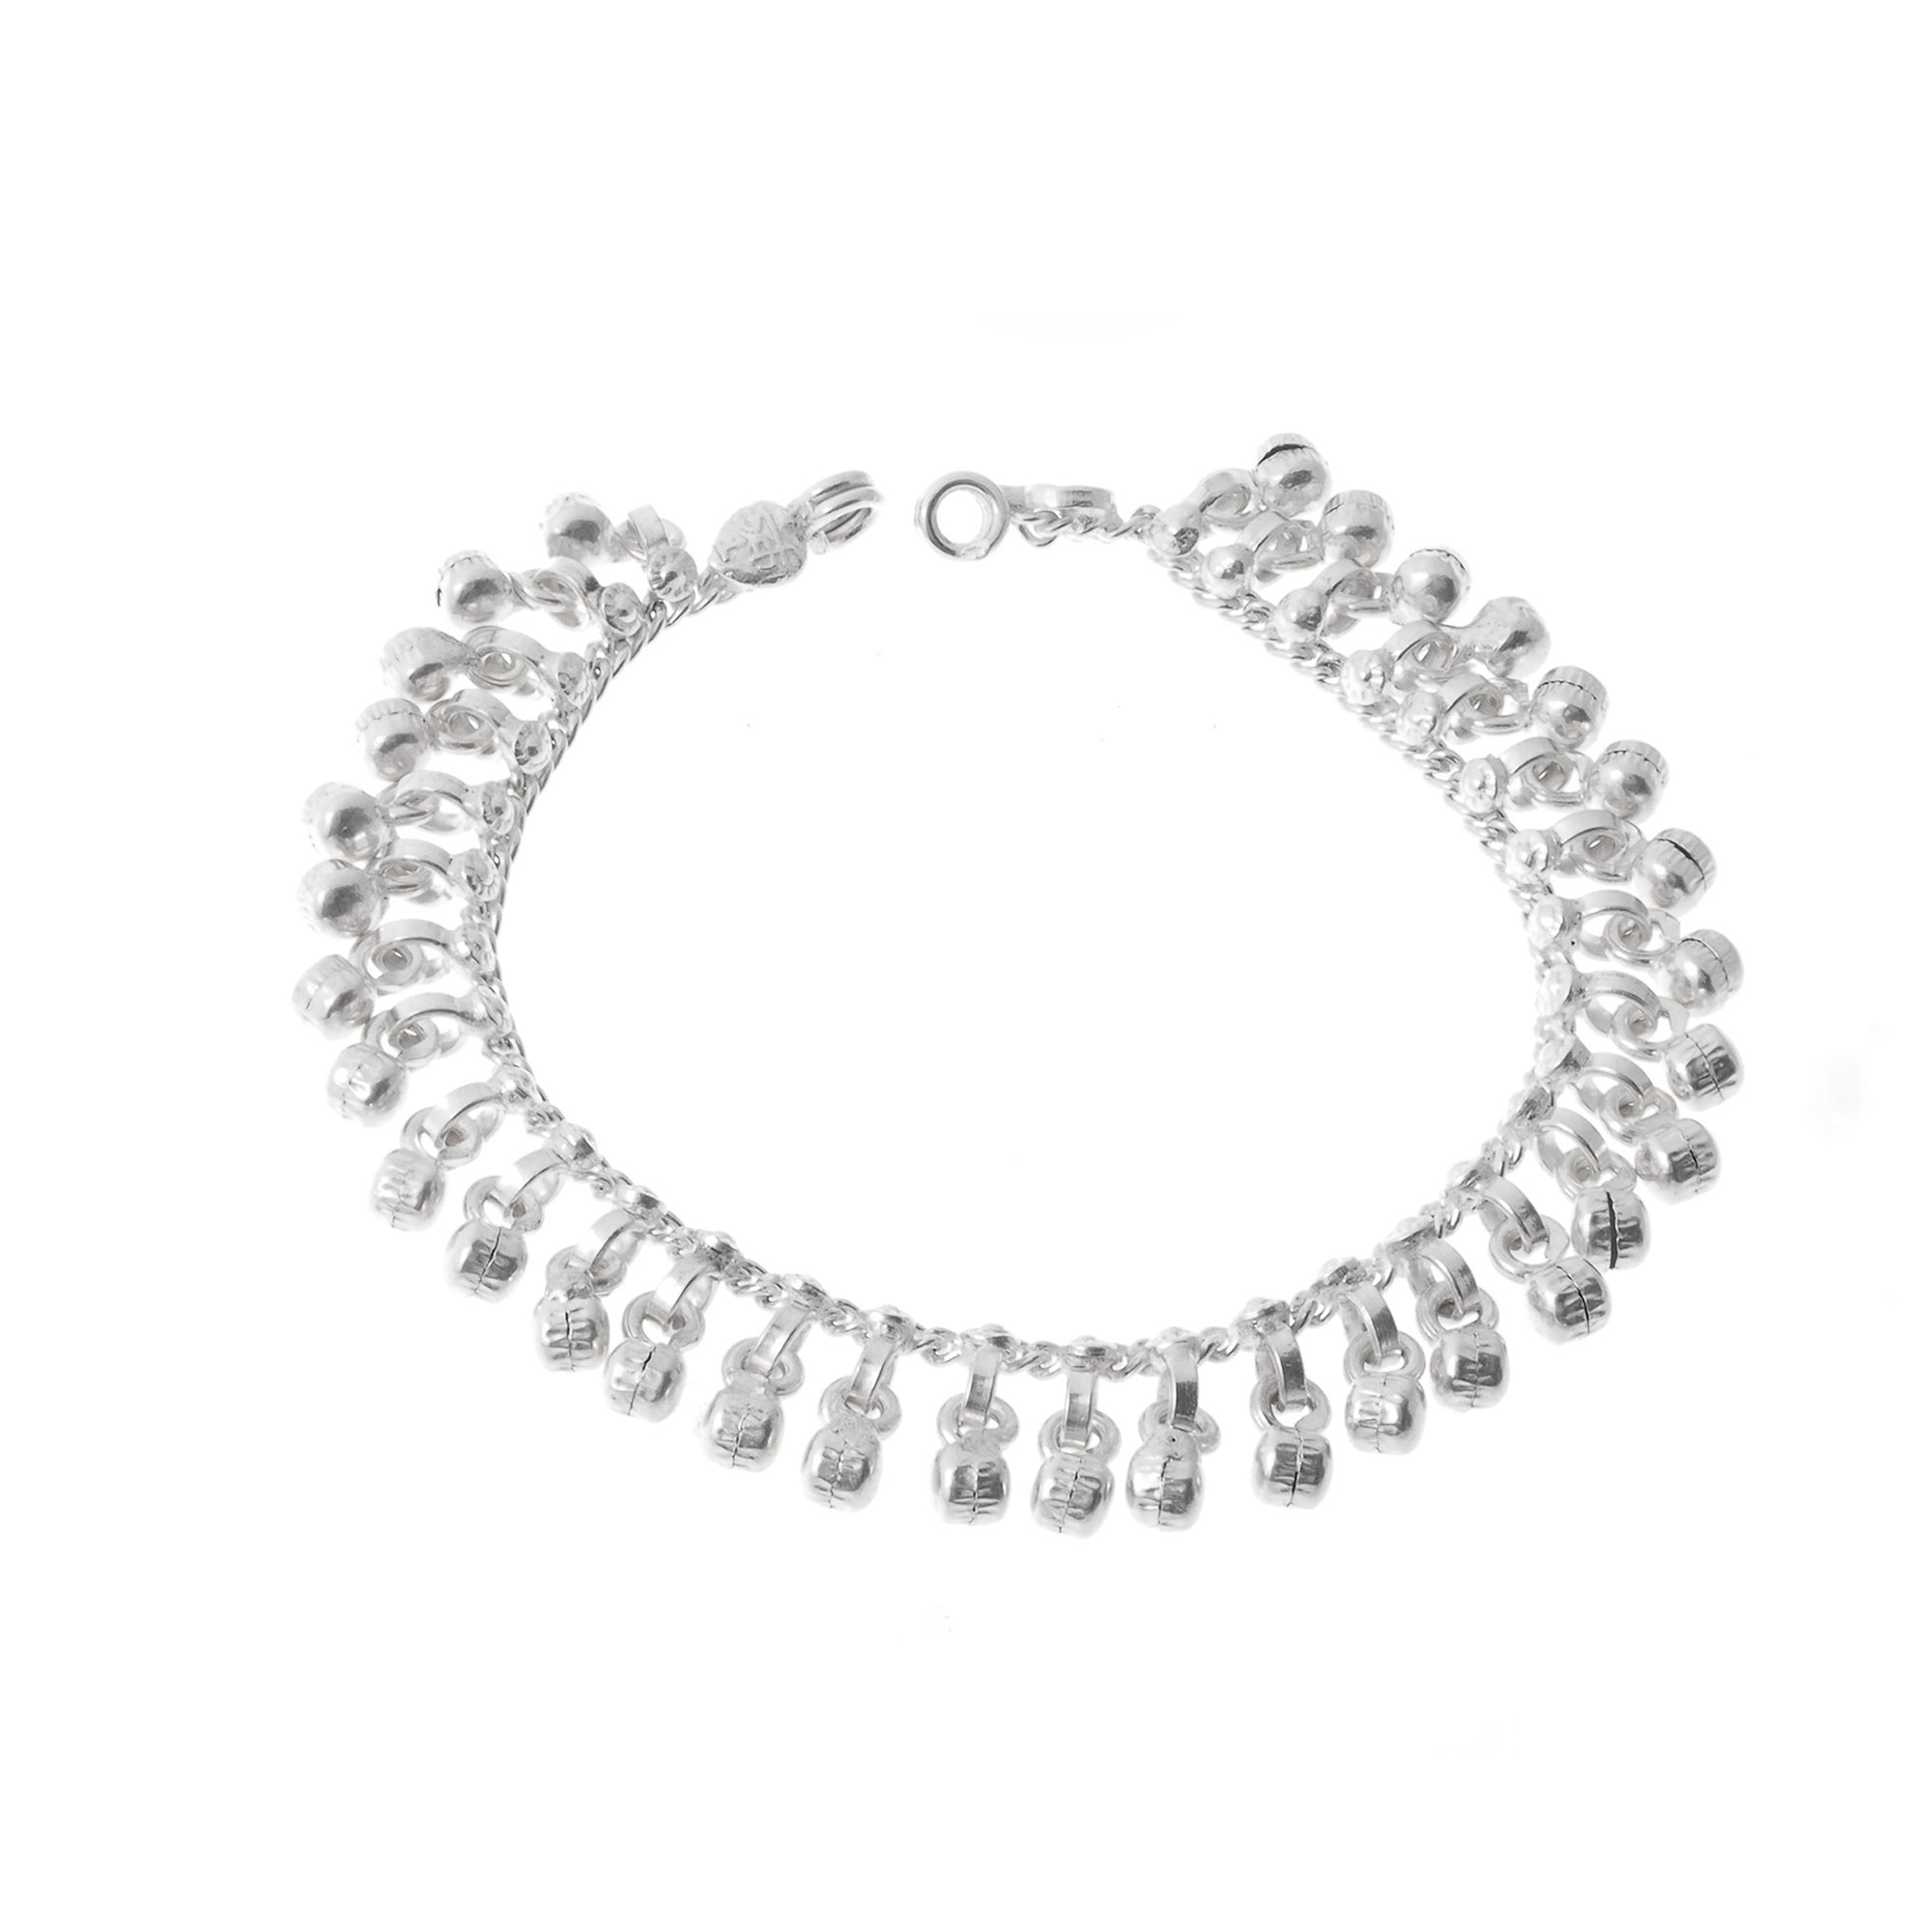 Sterling Silver Anklets with Ghughri Bell Charms for Children (A-7147) - Single